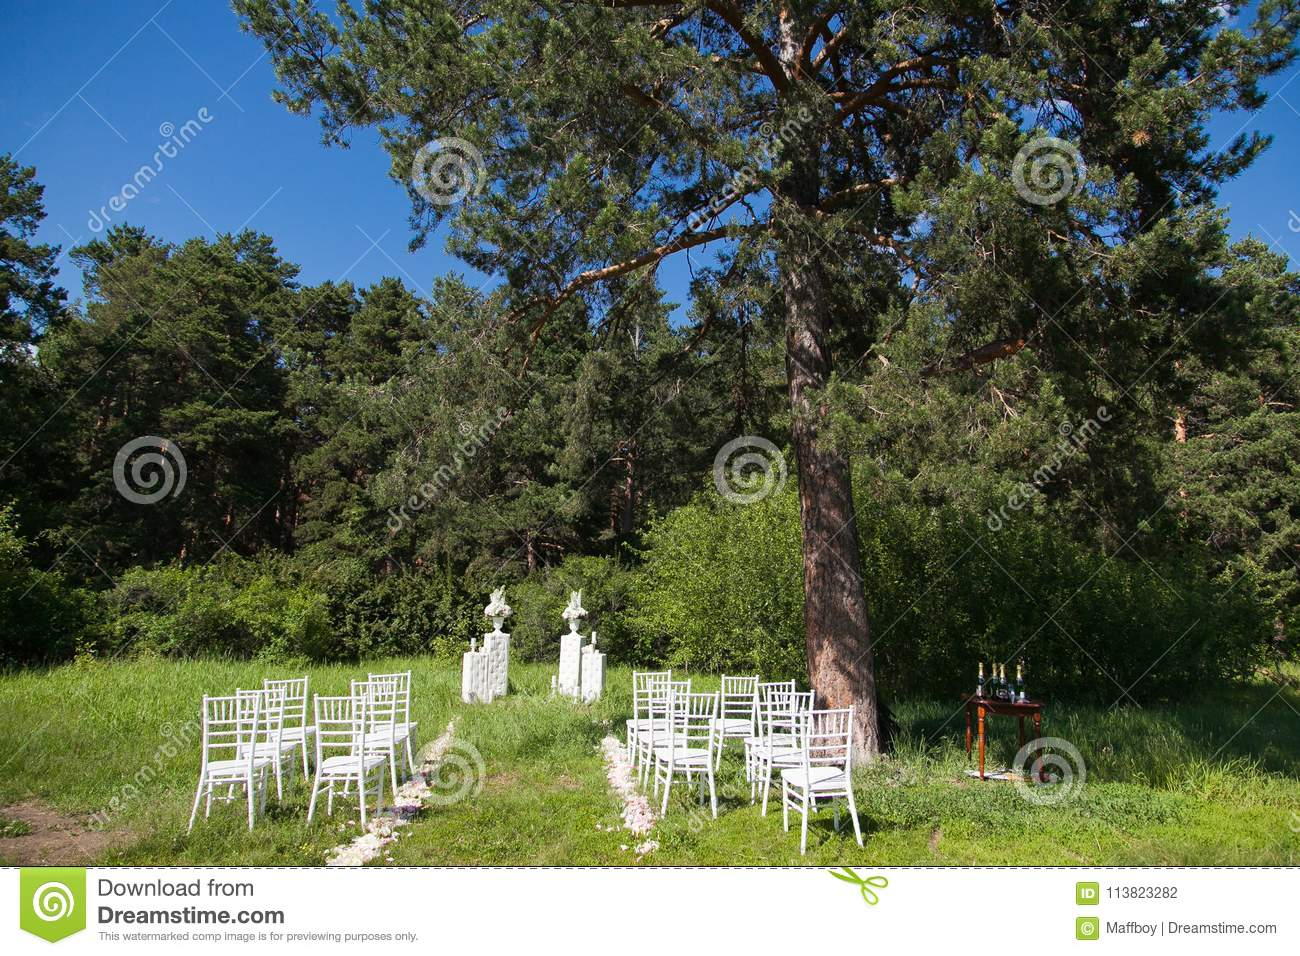 Chairs on wedding ceremony